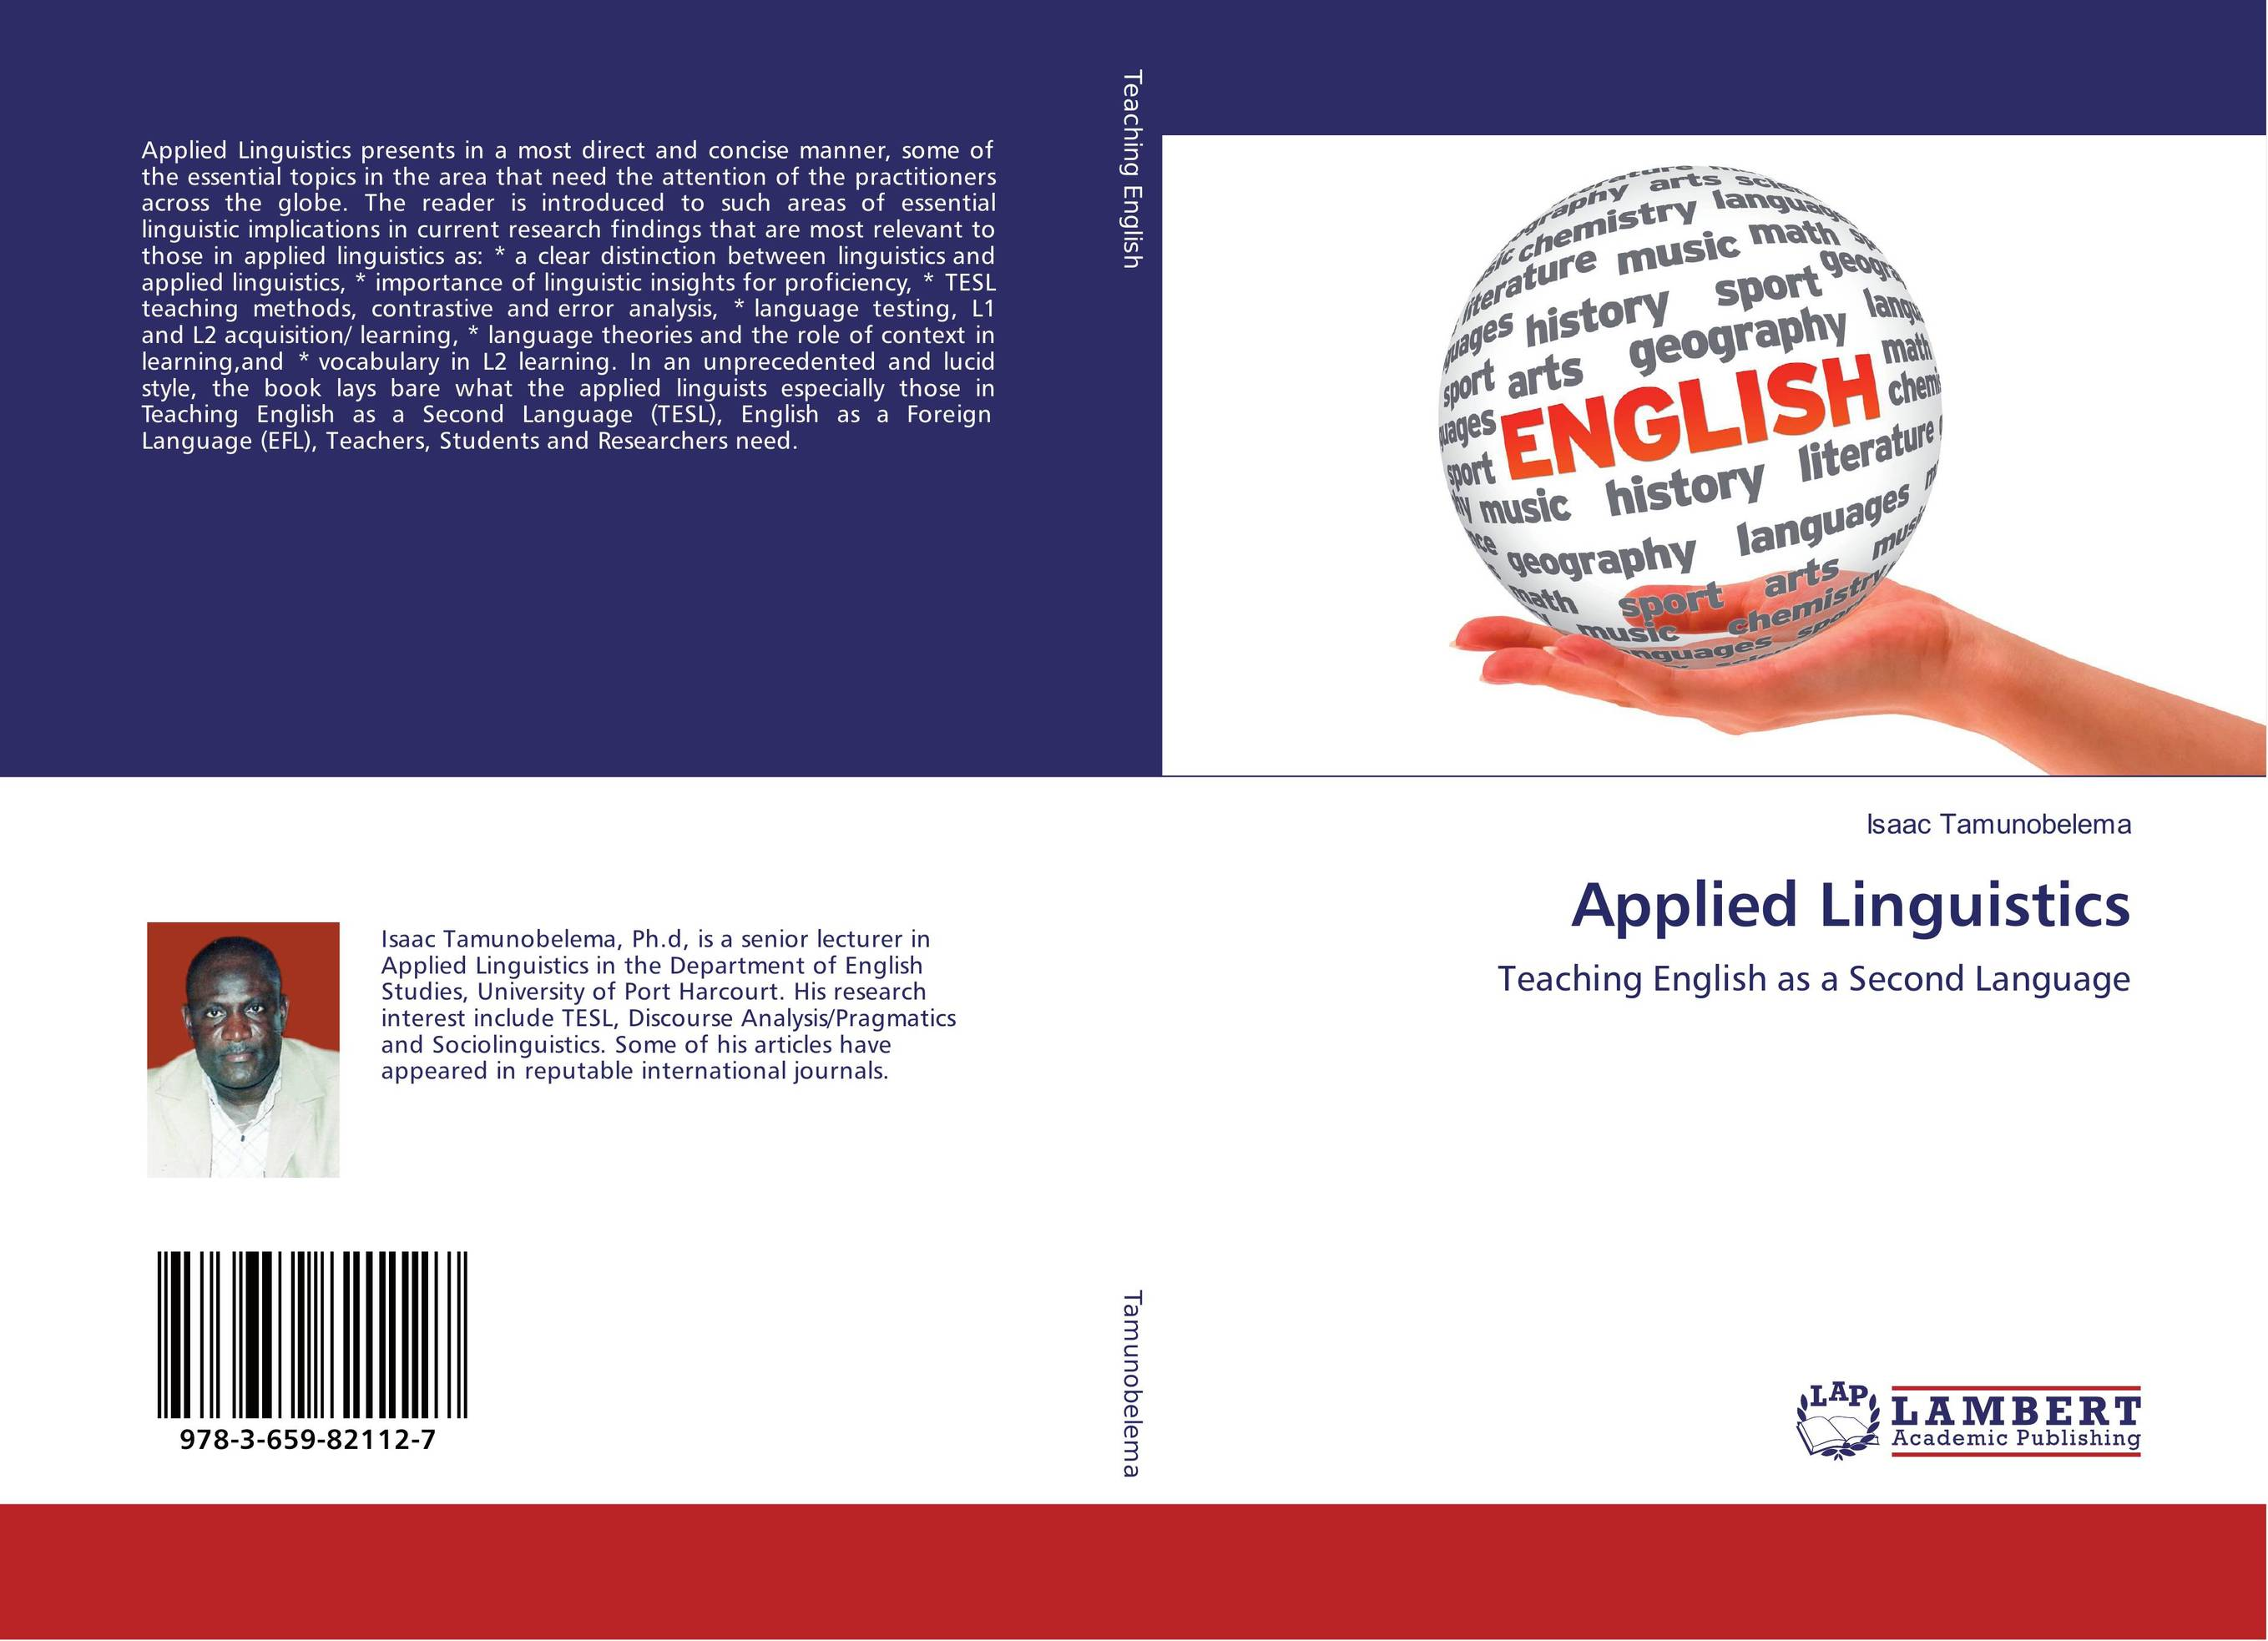 Applied Linguistics the internal load analysis in soccer